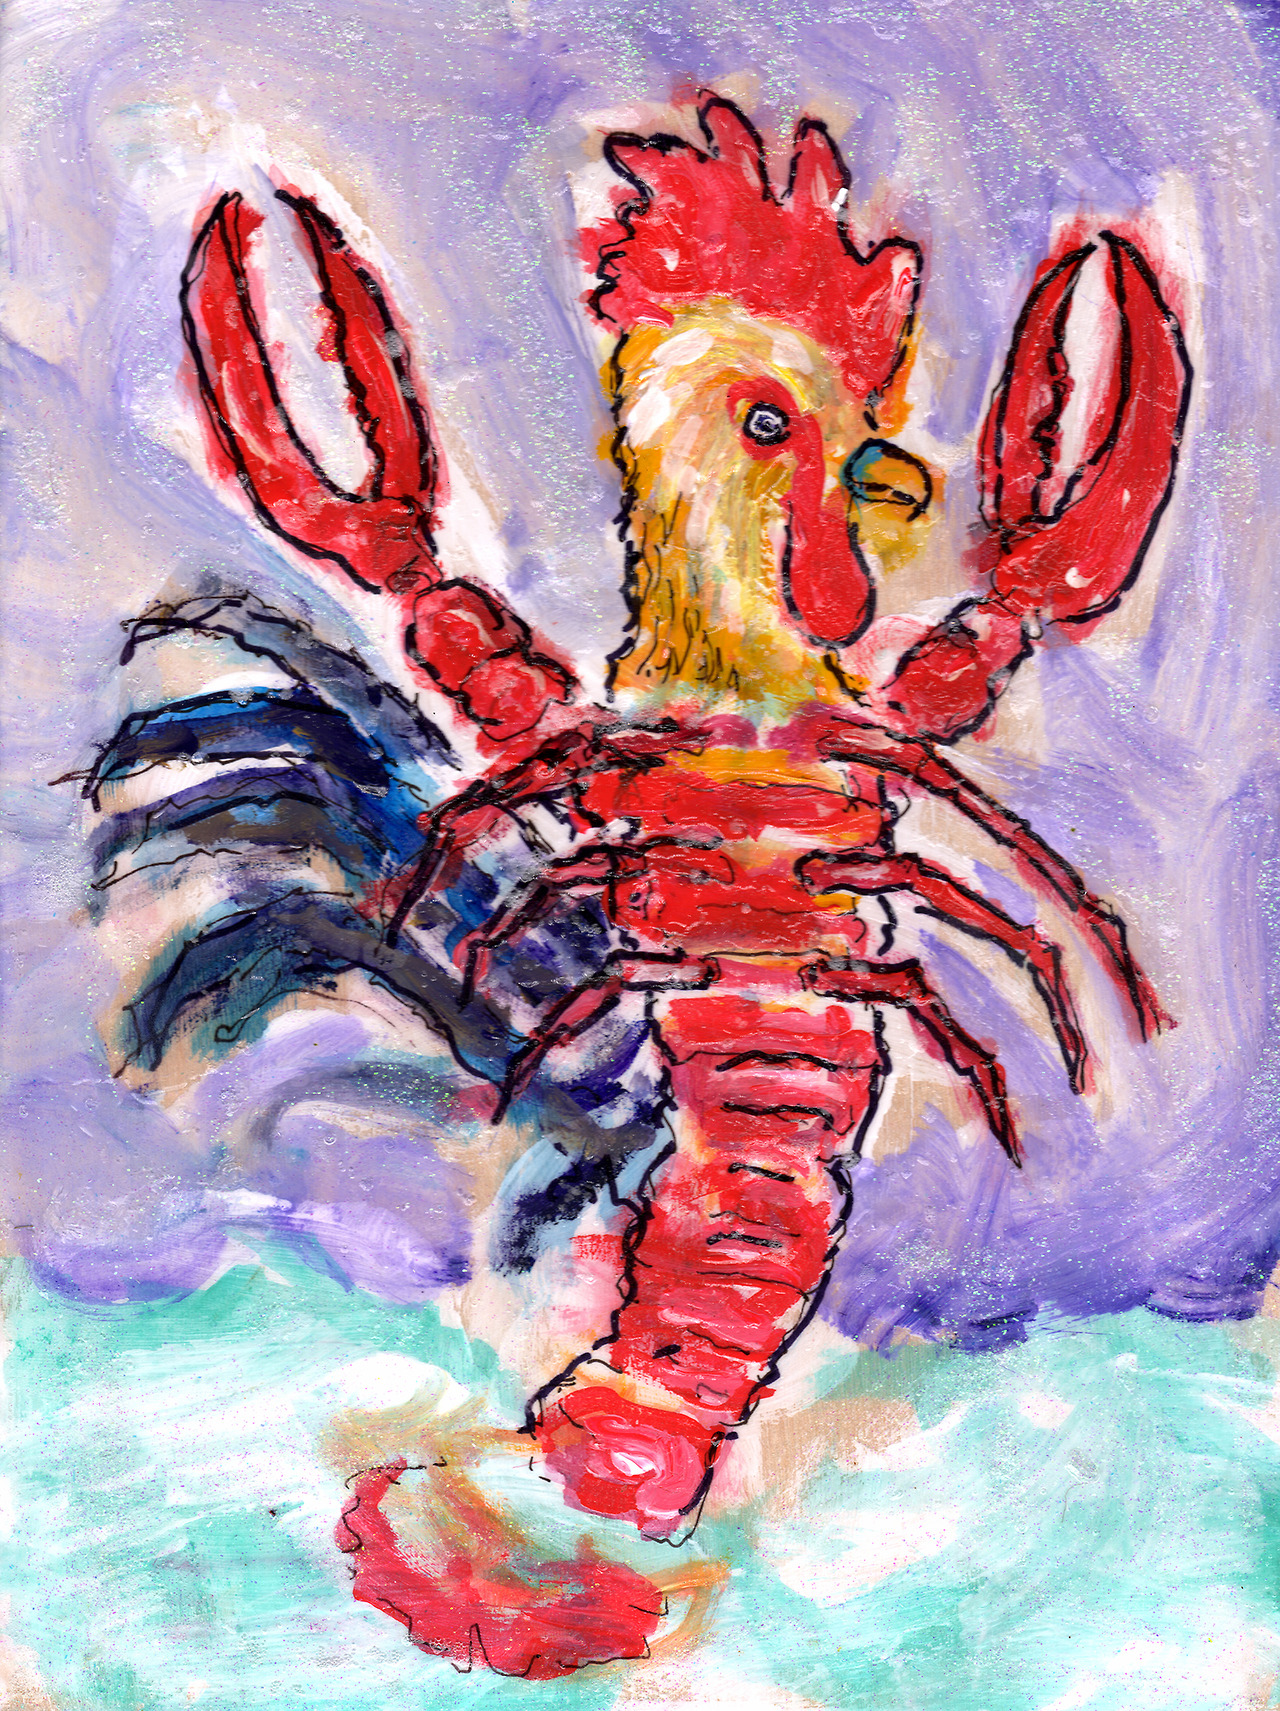 12/10/13 - Cock Lobster. Yeah, I was listening to the B-52s. Anyway, the seas were rough that day, my friend. Rough indeed. Buy it here - http://taylorwinder.bigcartel.com Prints here - http://society6.com/taylorwinder